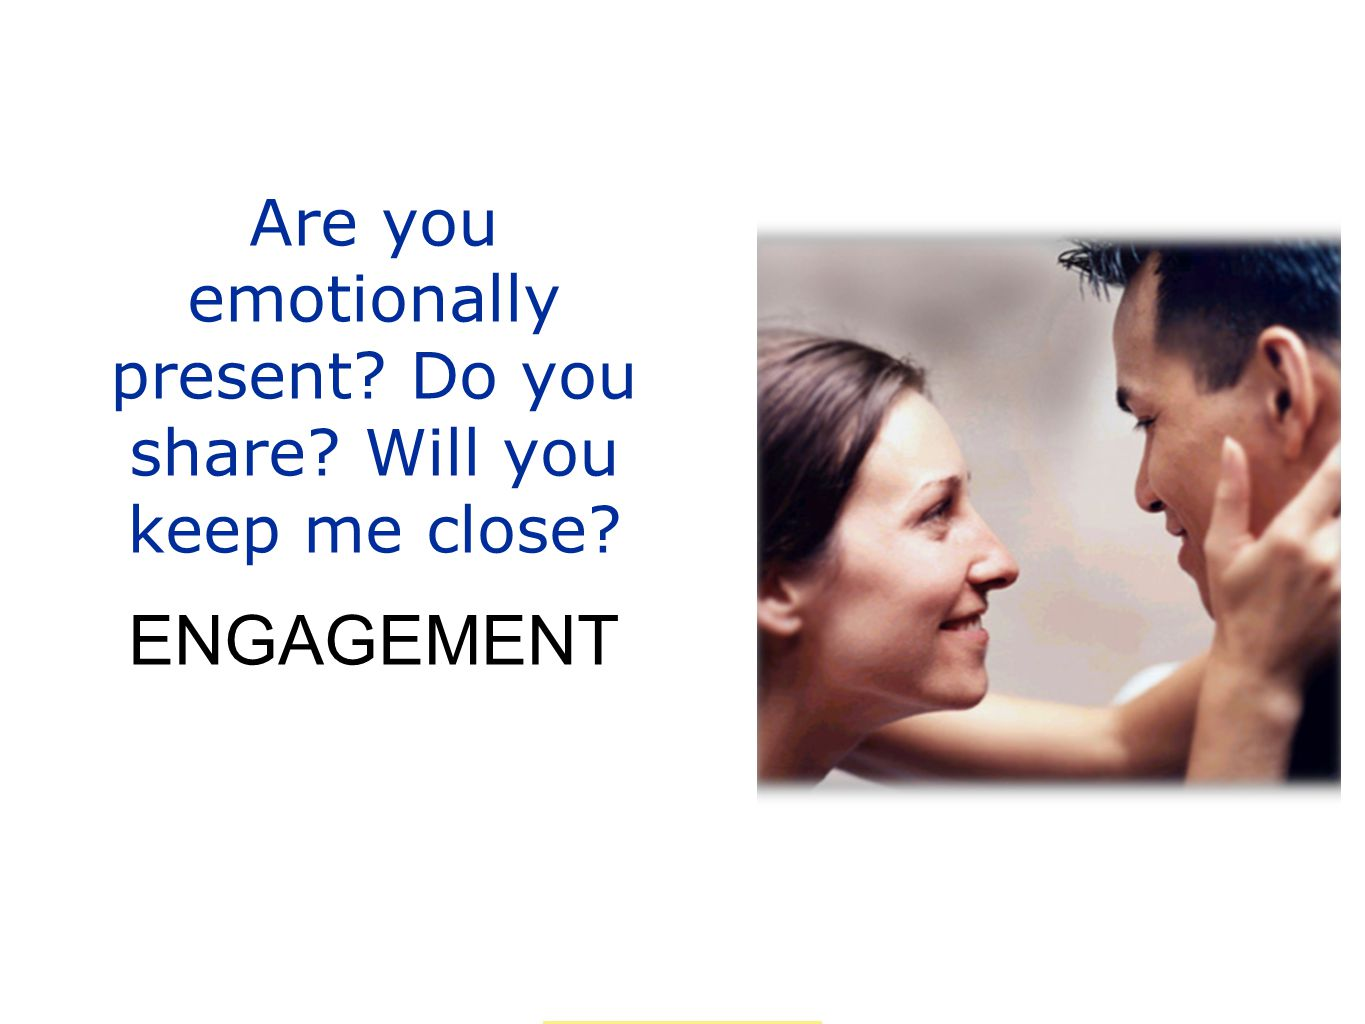 Are you emotionally present? Do you share? Will you keep me close? ENGAGEMENT